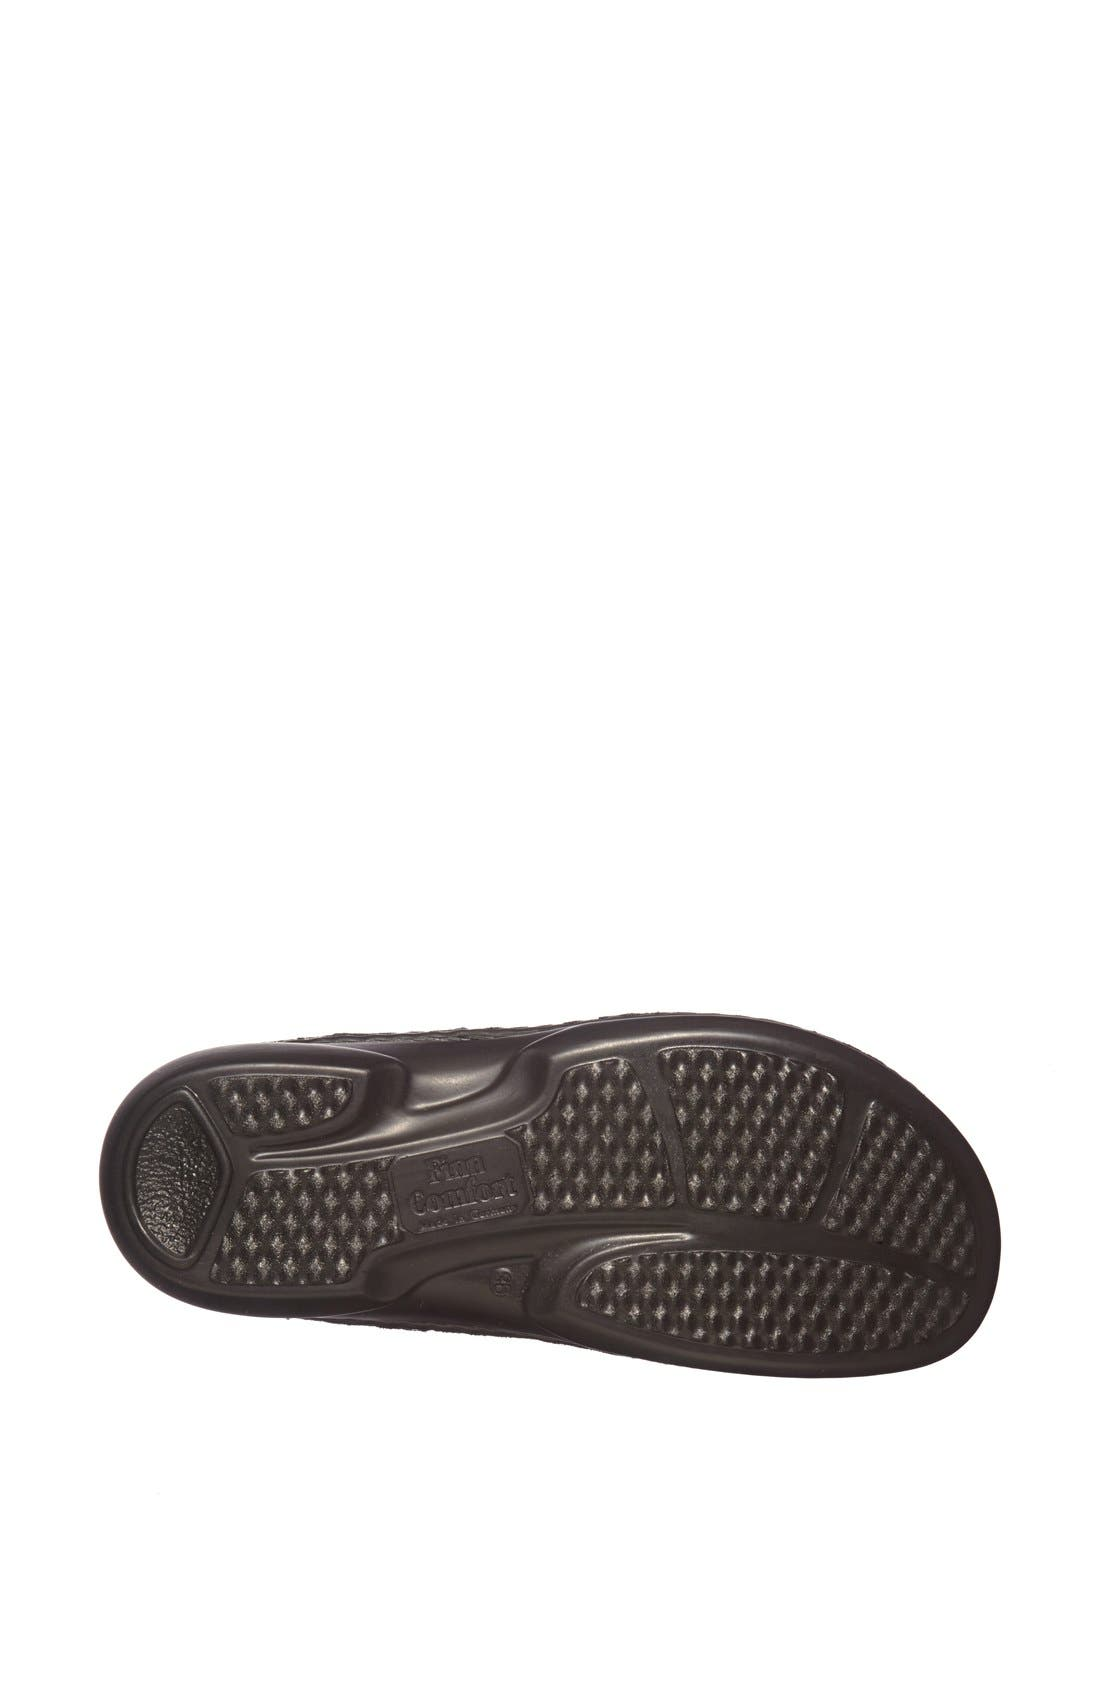 'Gomera' Sandal,                             Alternate thumbnail 4, color,                             Black